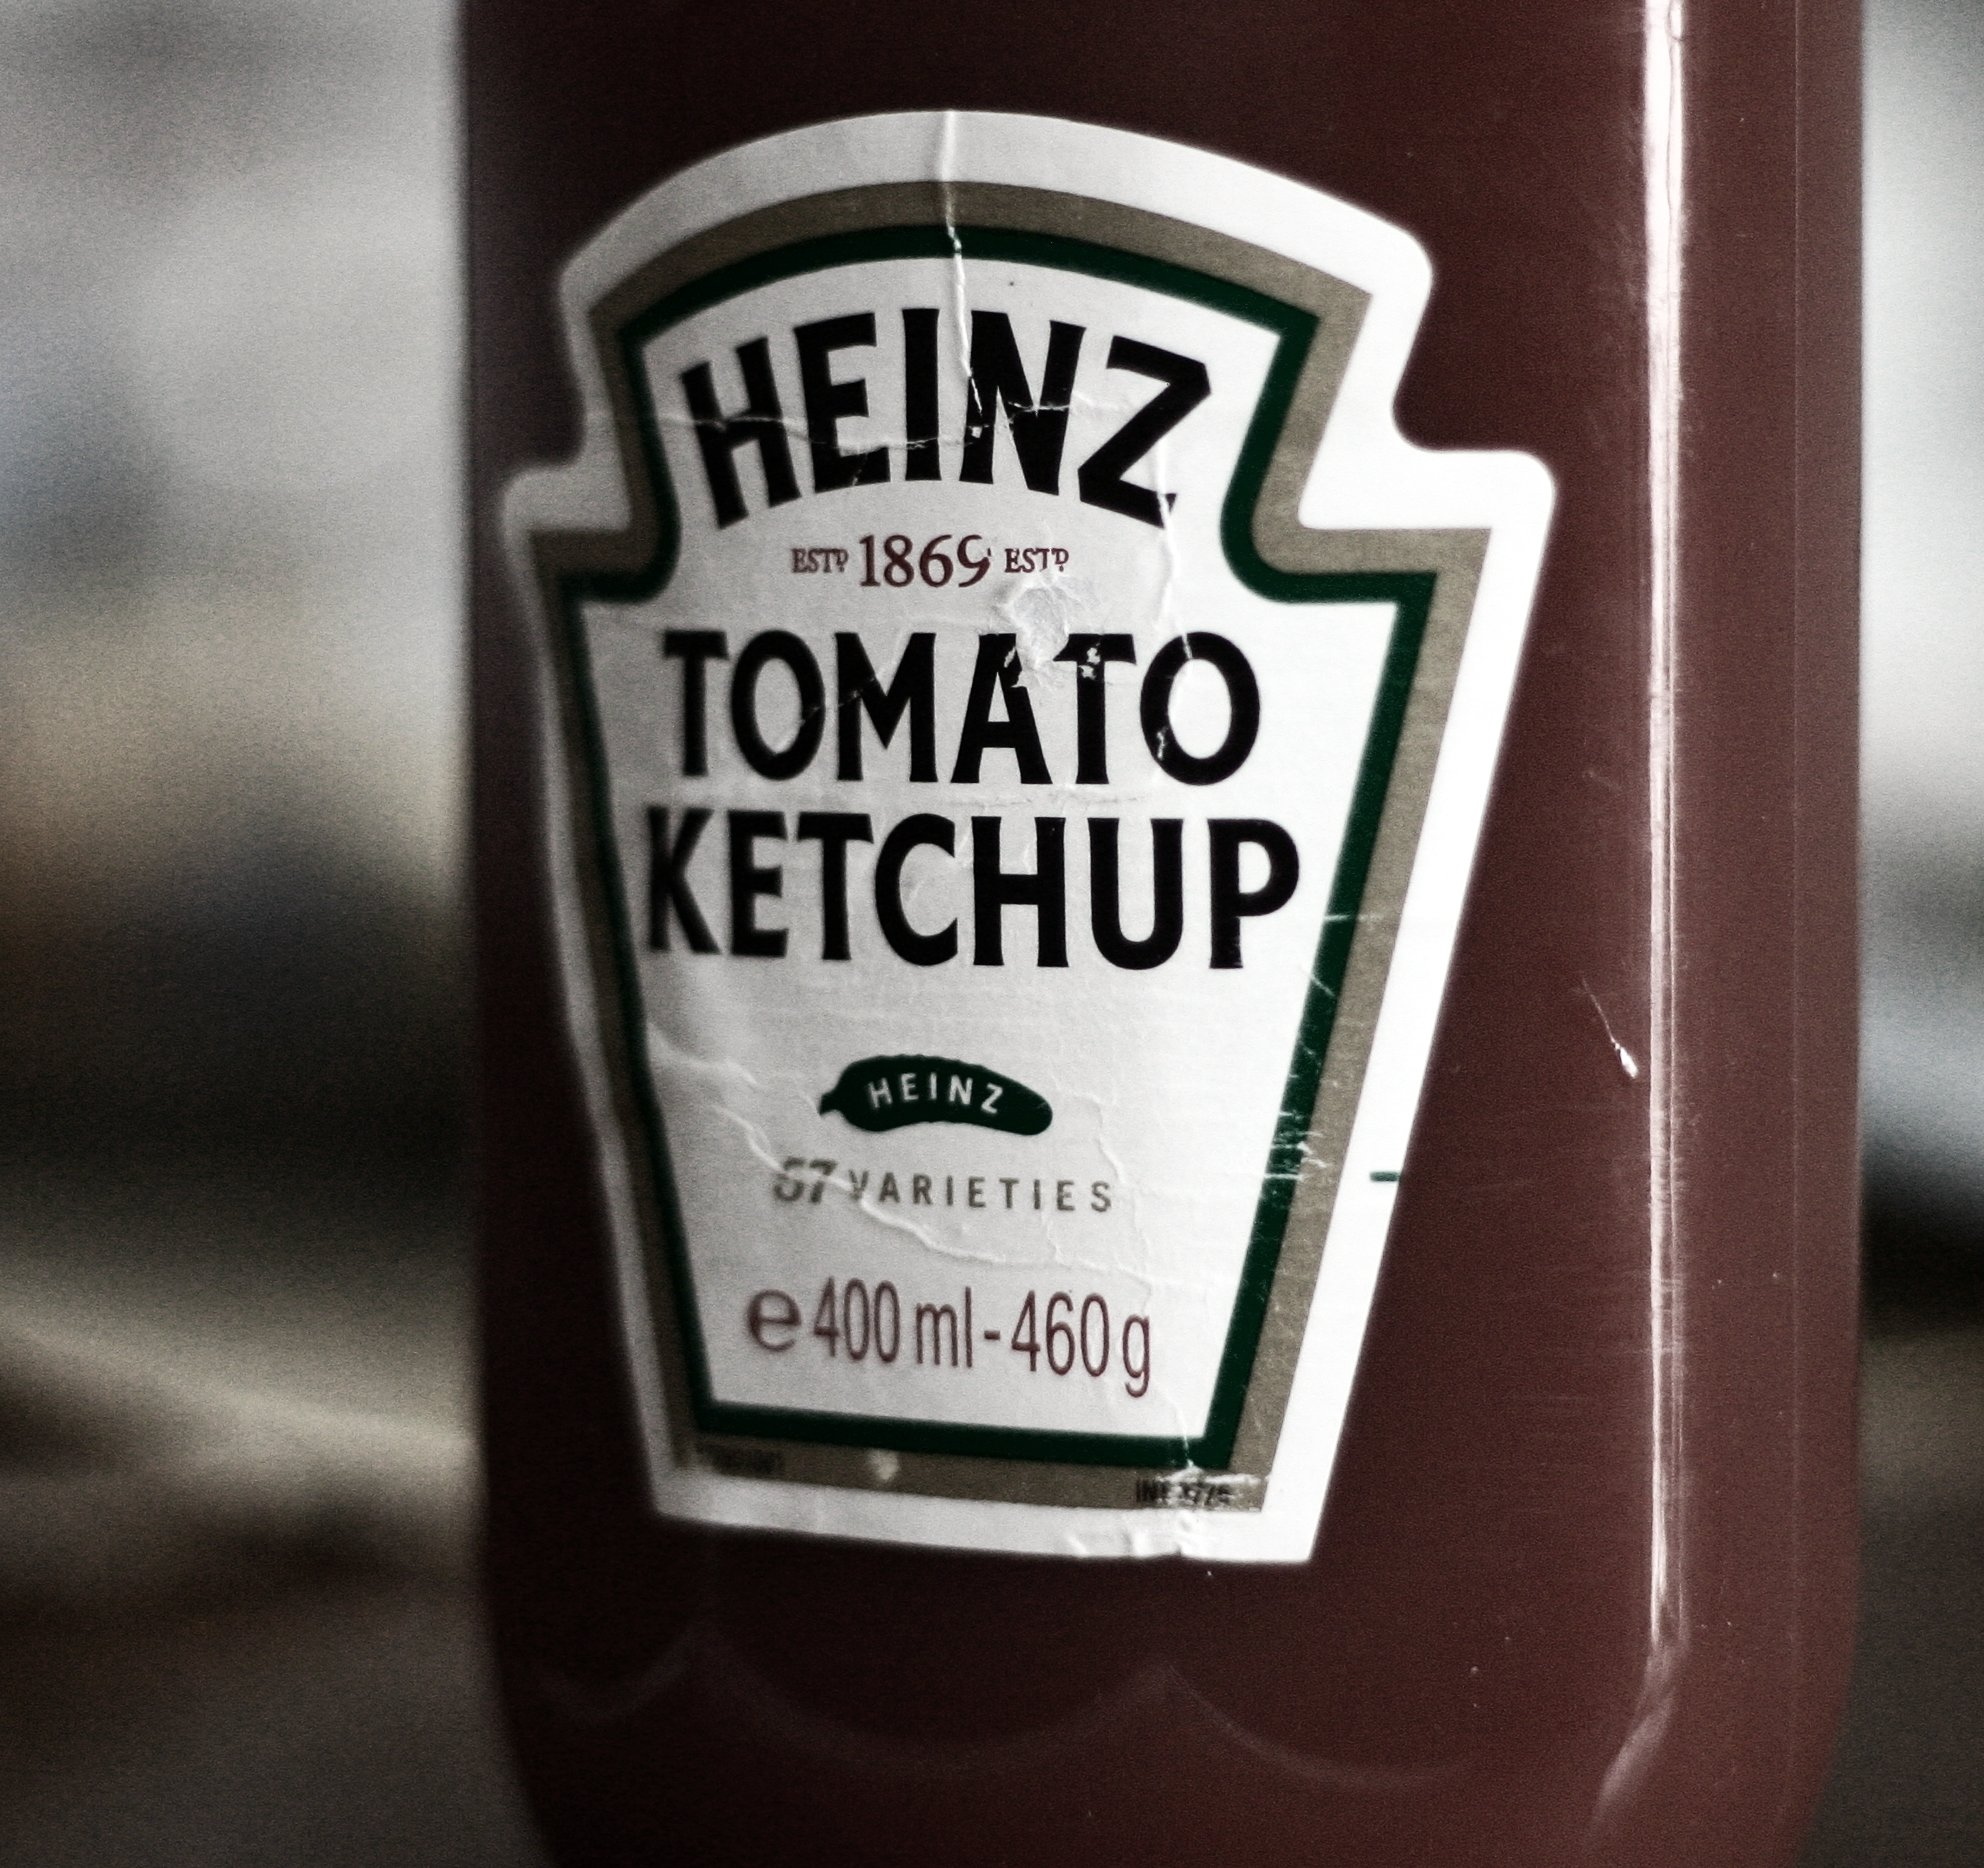 Heinz Is Very Sorry for Ketchup Bottle's QR Code That Led to a Porn